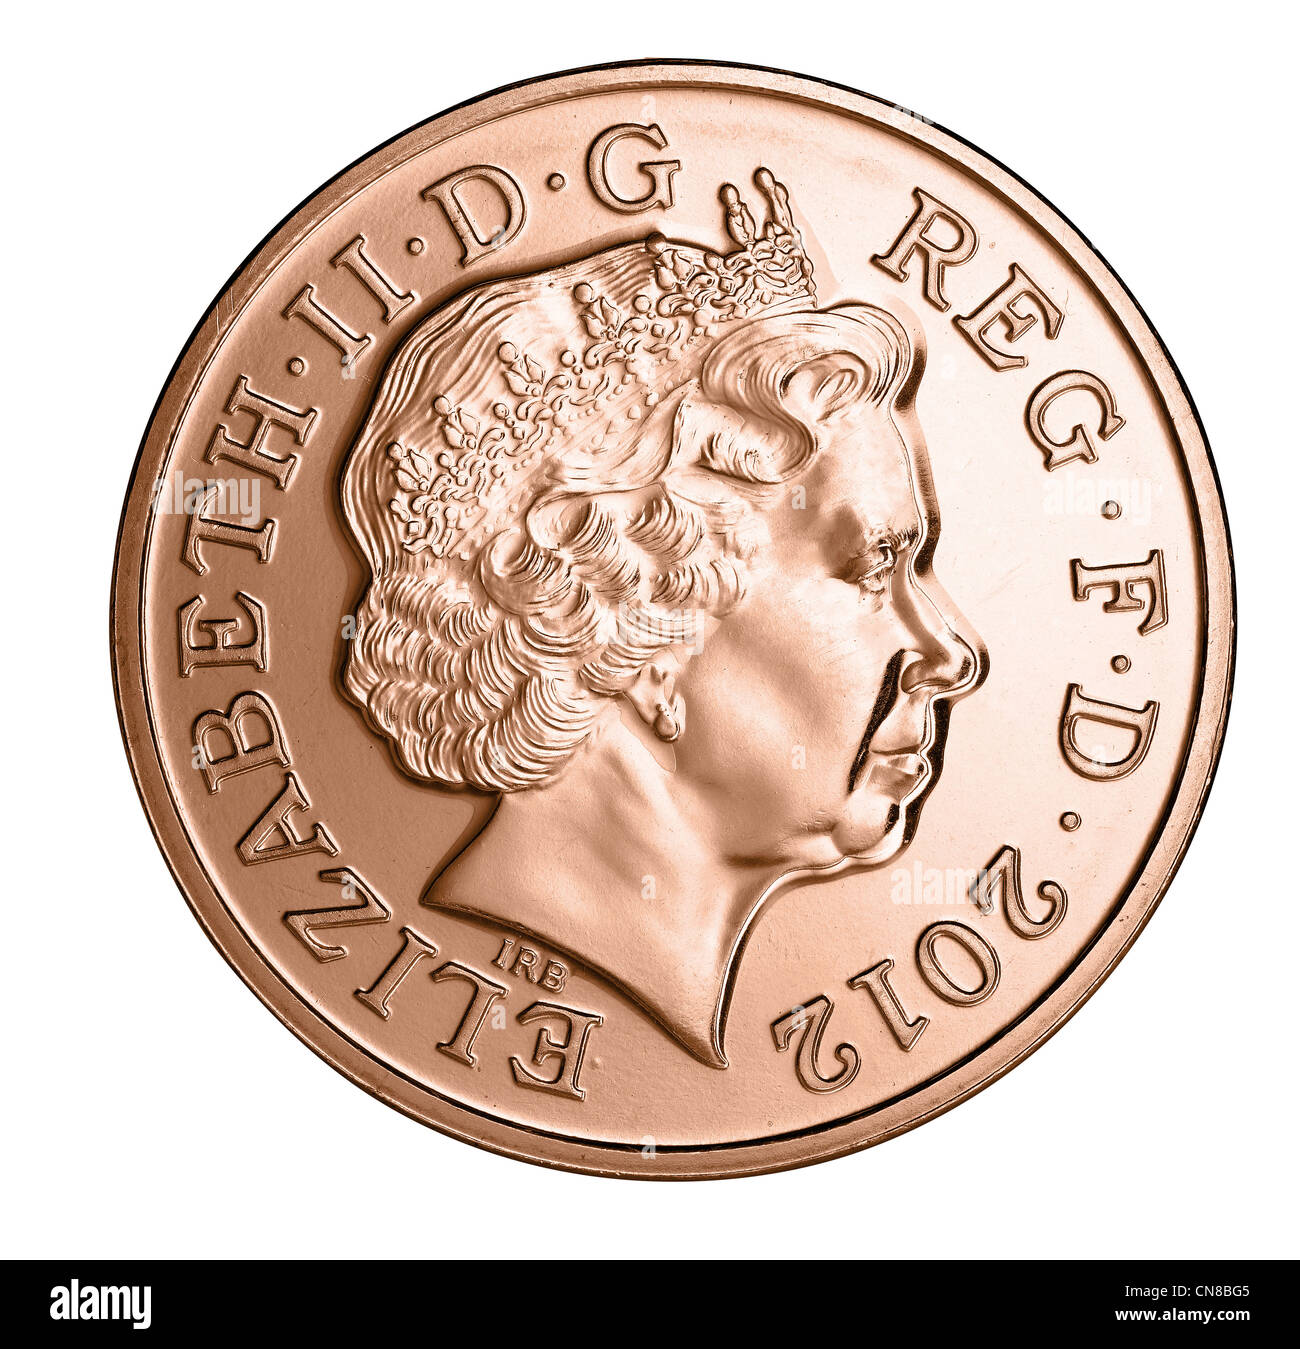 2p two pence coin head on heads obverse 2012 - Stock Image